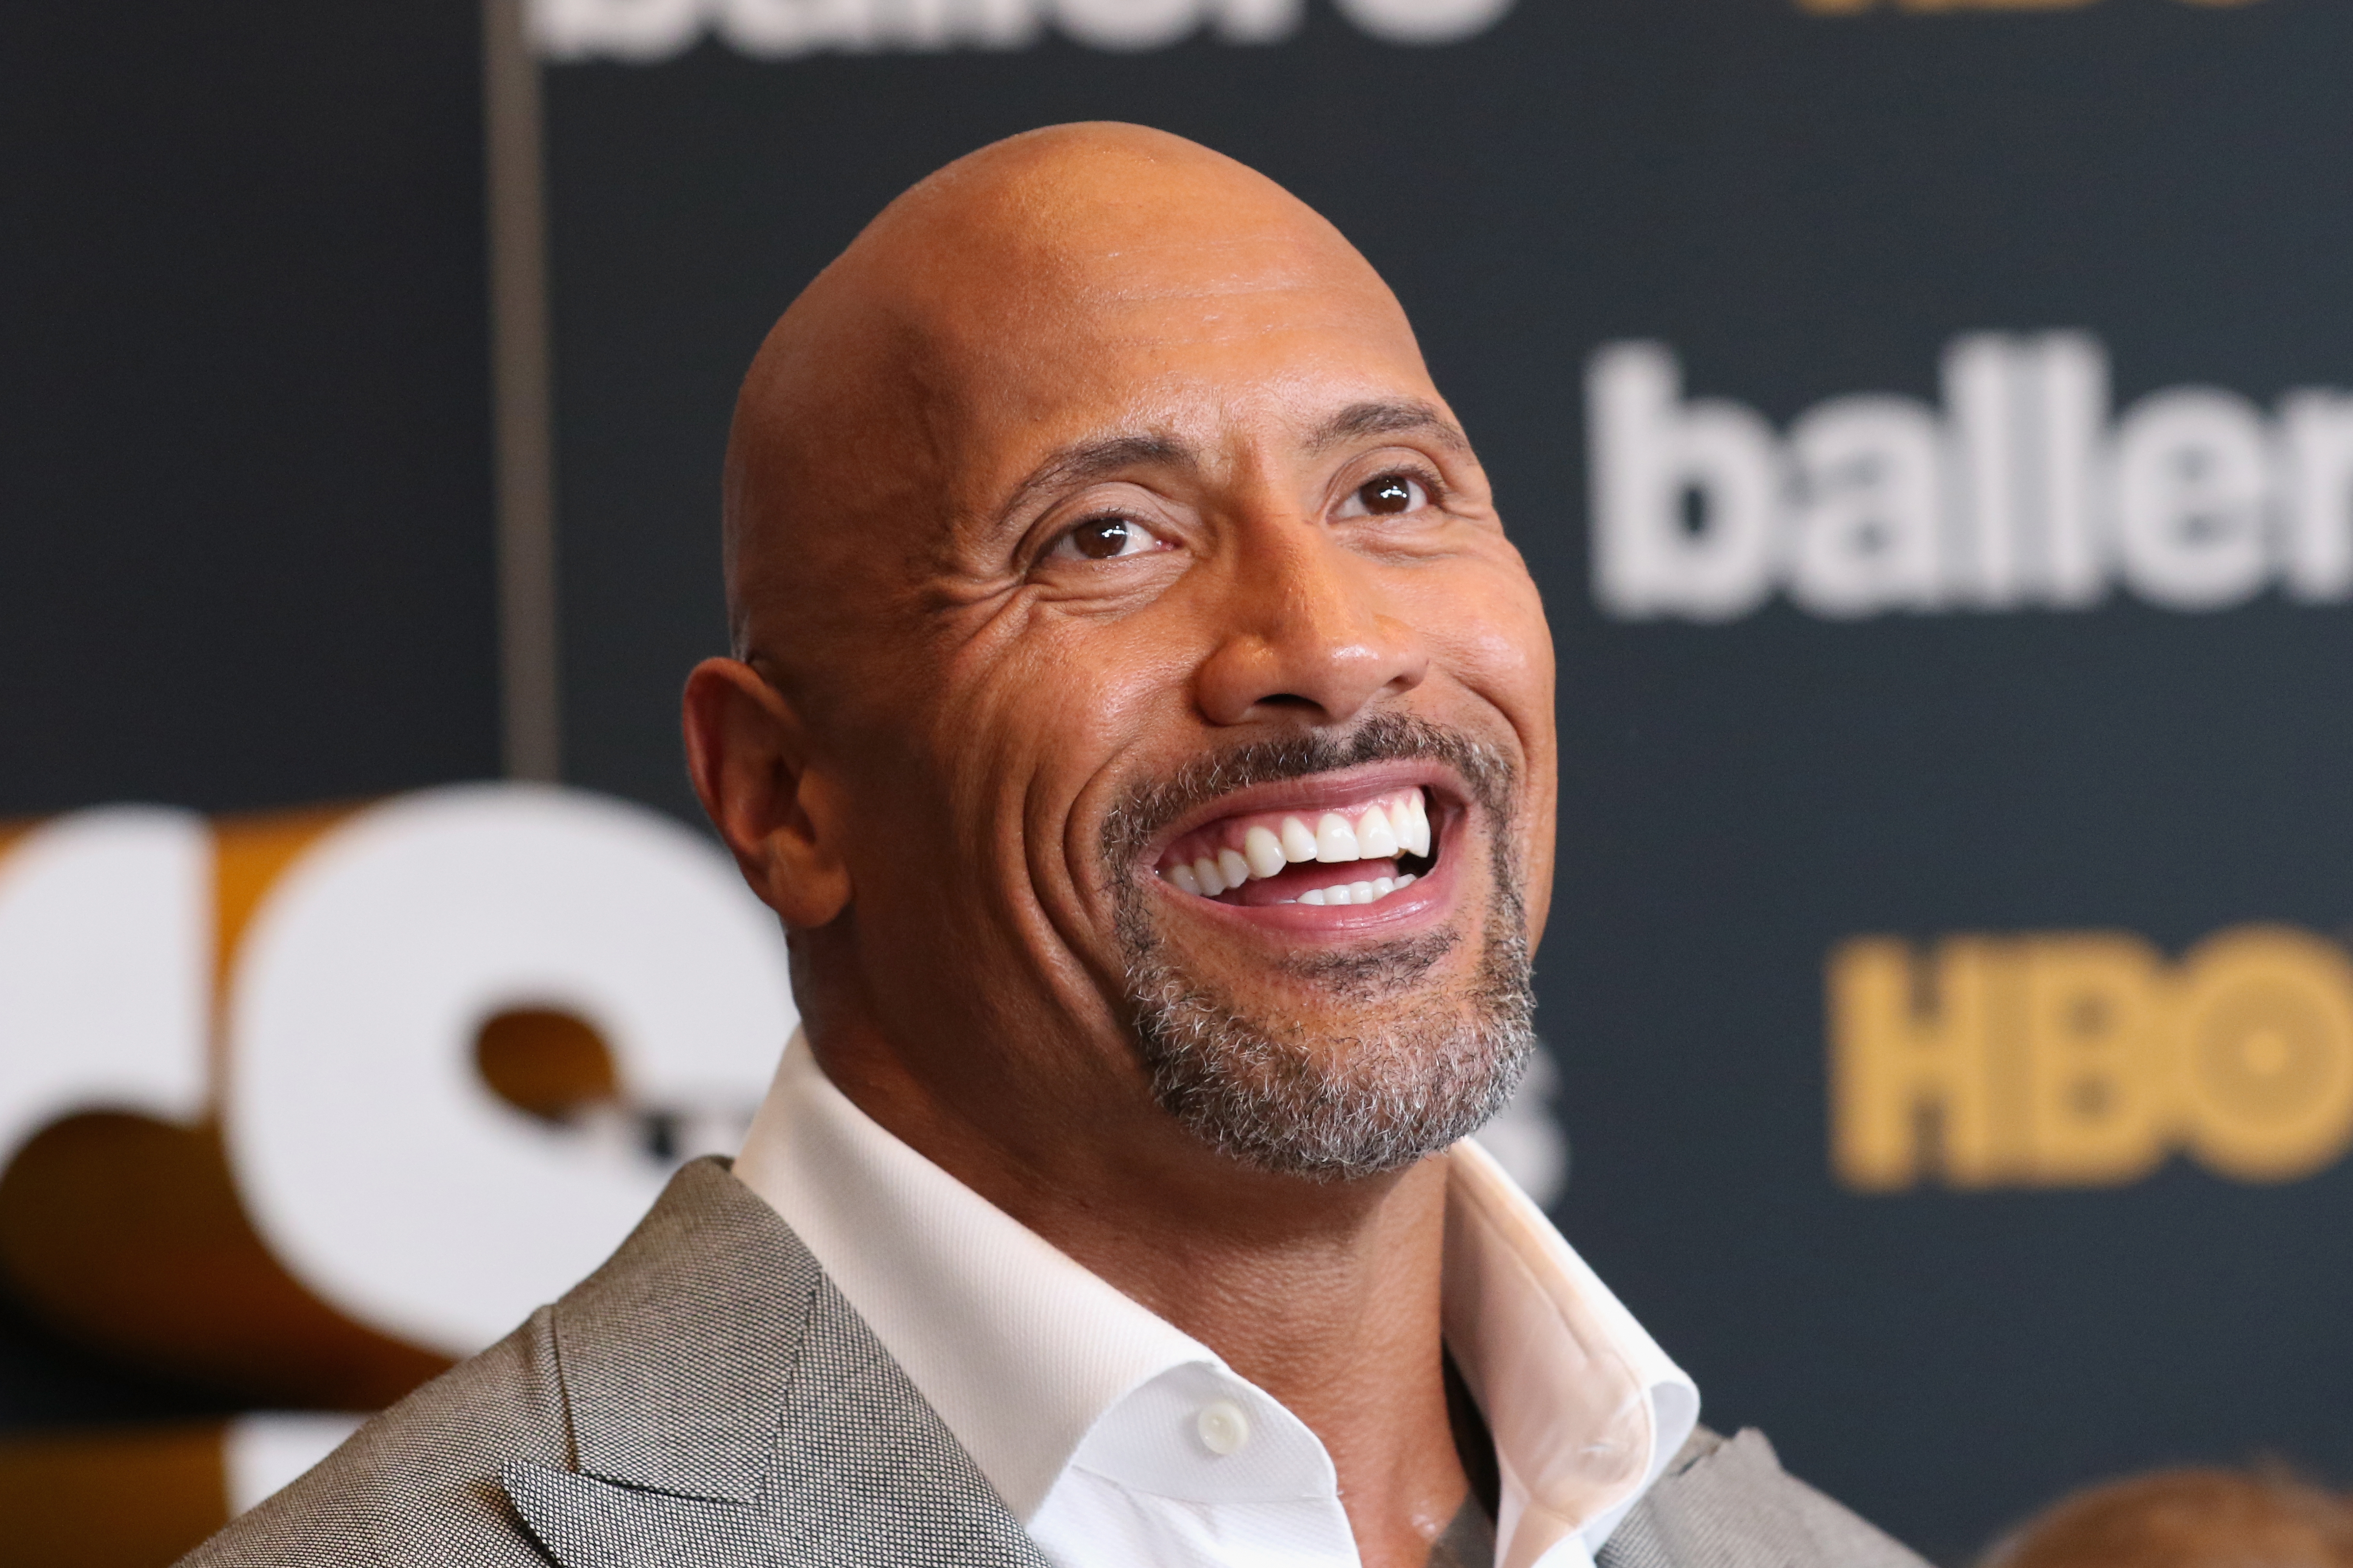 Dwayne Johnson attends the HBO  Ballers  Season 2 Red Carpet Premiere and Reception on July 14, 2016 at New World Symphony in Miami Beach, Florida.